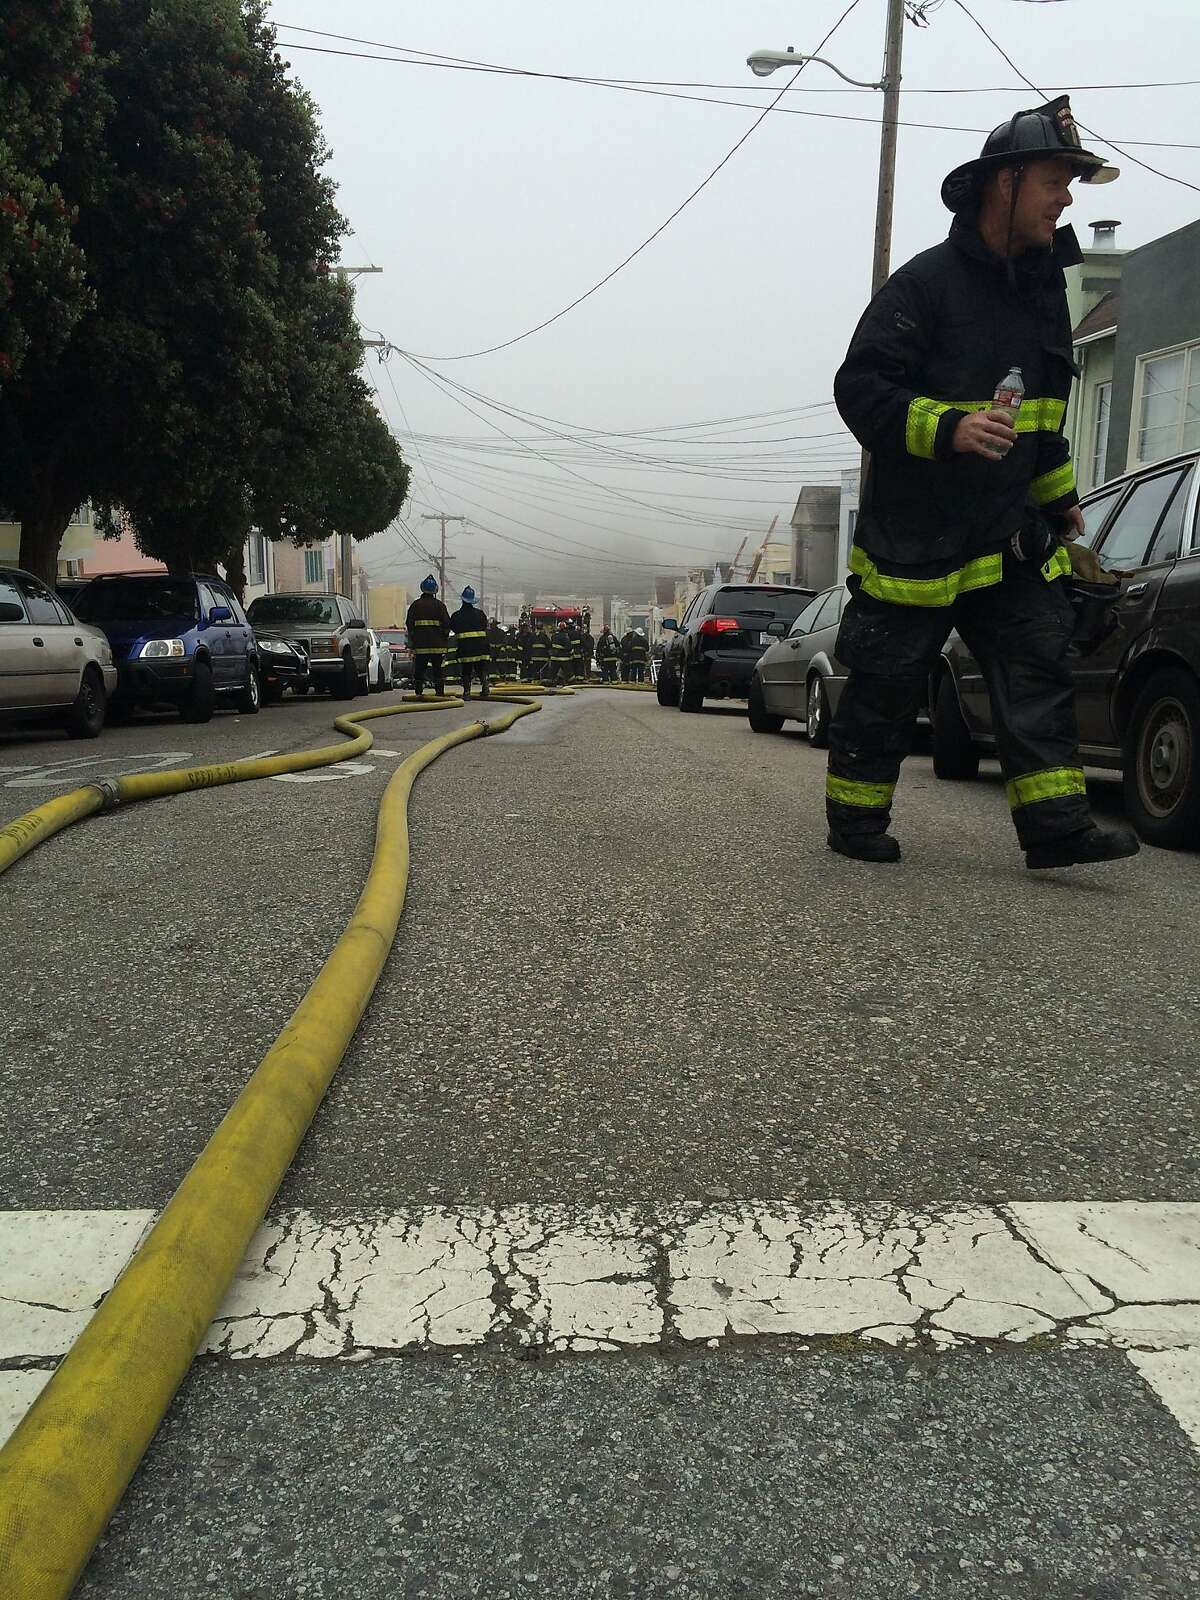 San Francisco firefighters at the scene of a blaze in the Oceanview neighborhood that injured two people and damaged four homes.